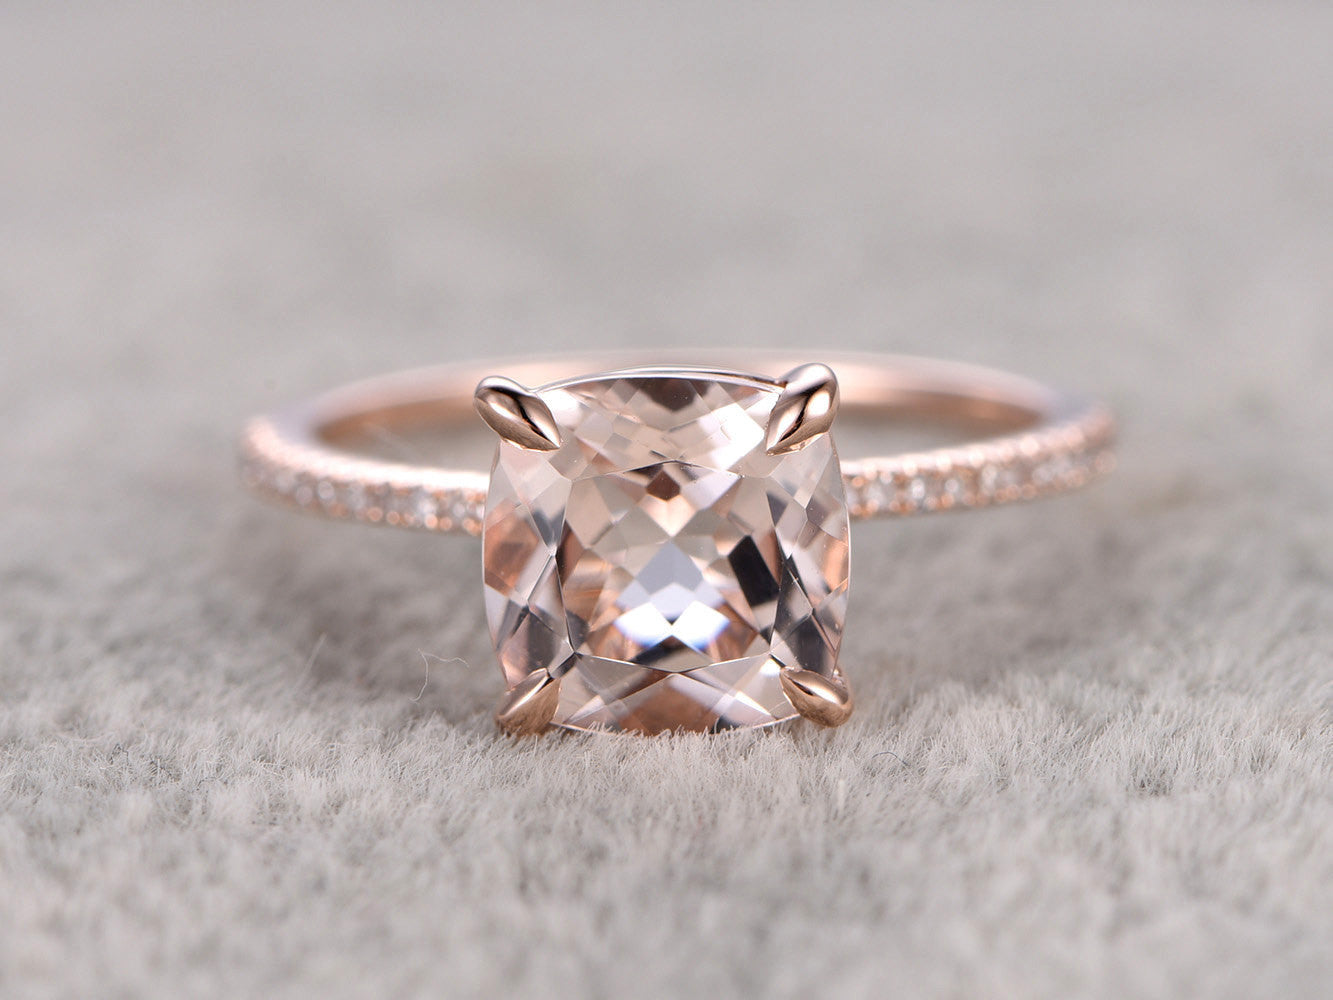 8mm Cushion Morganite Engagement ring Rose gold,Diamond wedding band,14k,Gemstone Promise Ring,Bridal Ring,Claw Prongs,custom made setting